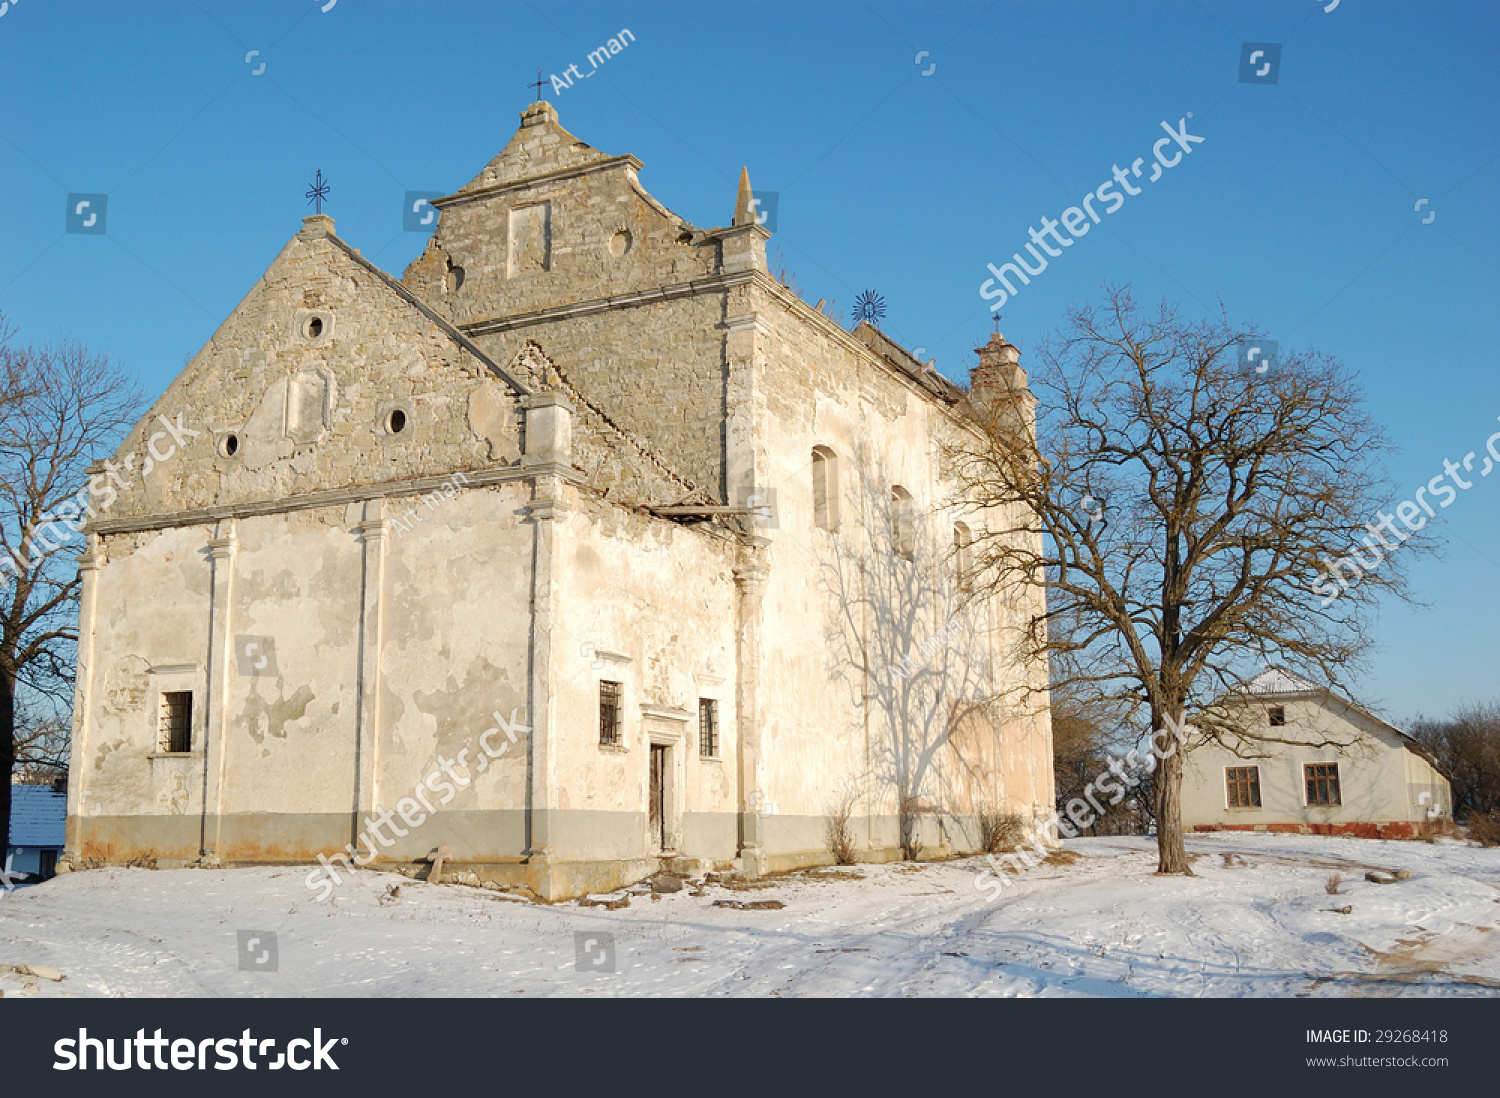 a history of the catholic church in the middle ages This middle ages and the church presentation is suitable for 7th - 8th grade several comprehension activities relate to the roman catholic church during the medieval age, including.